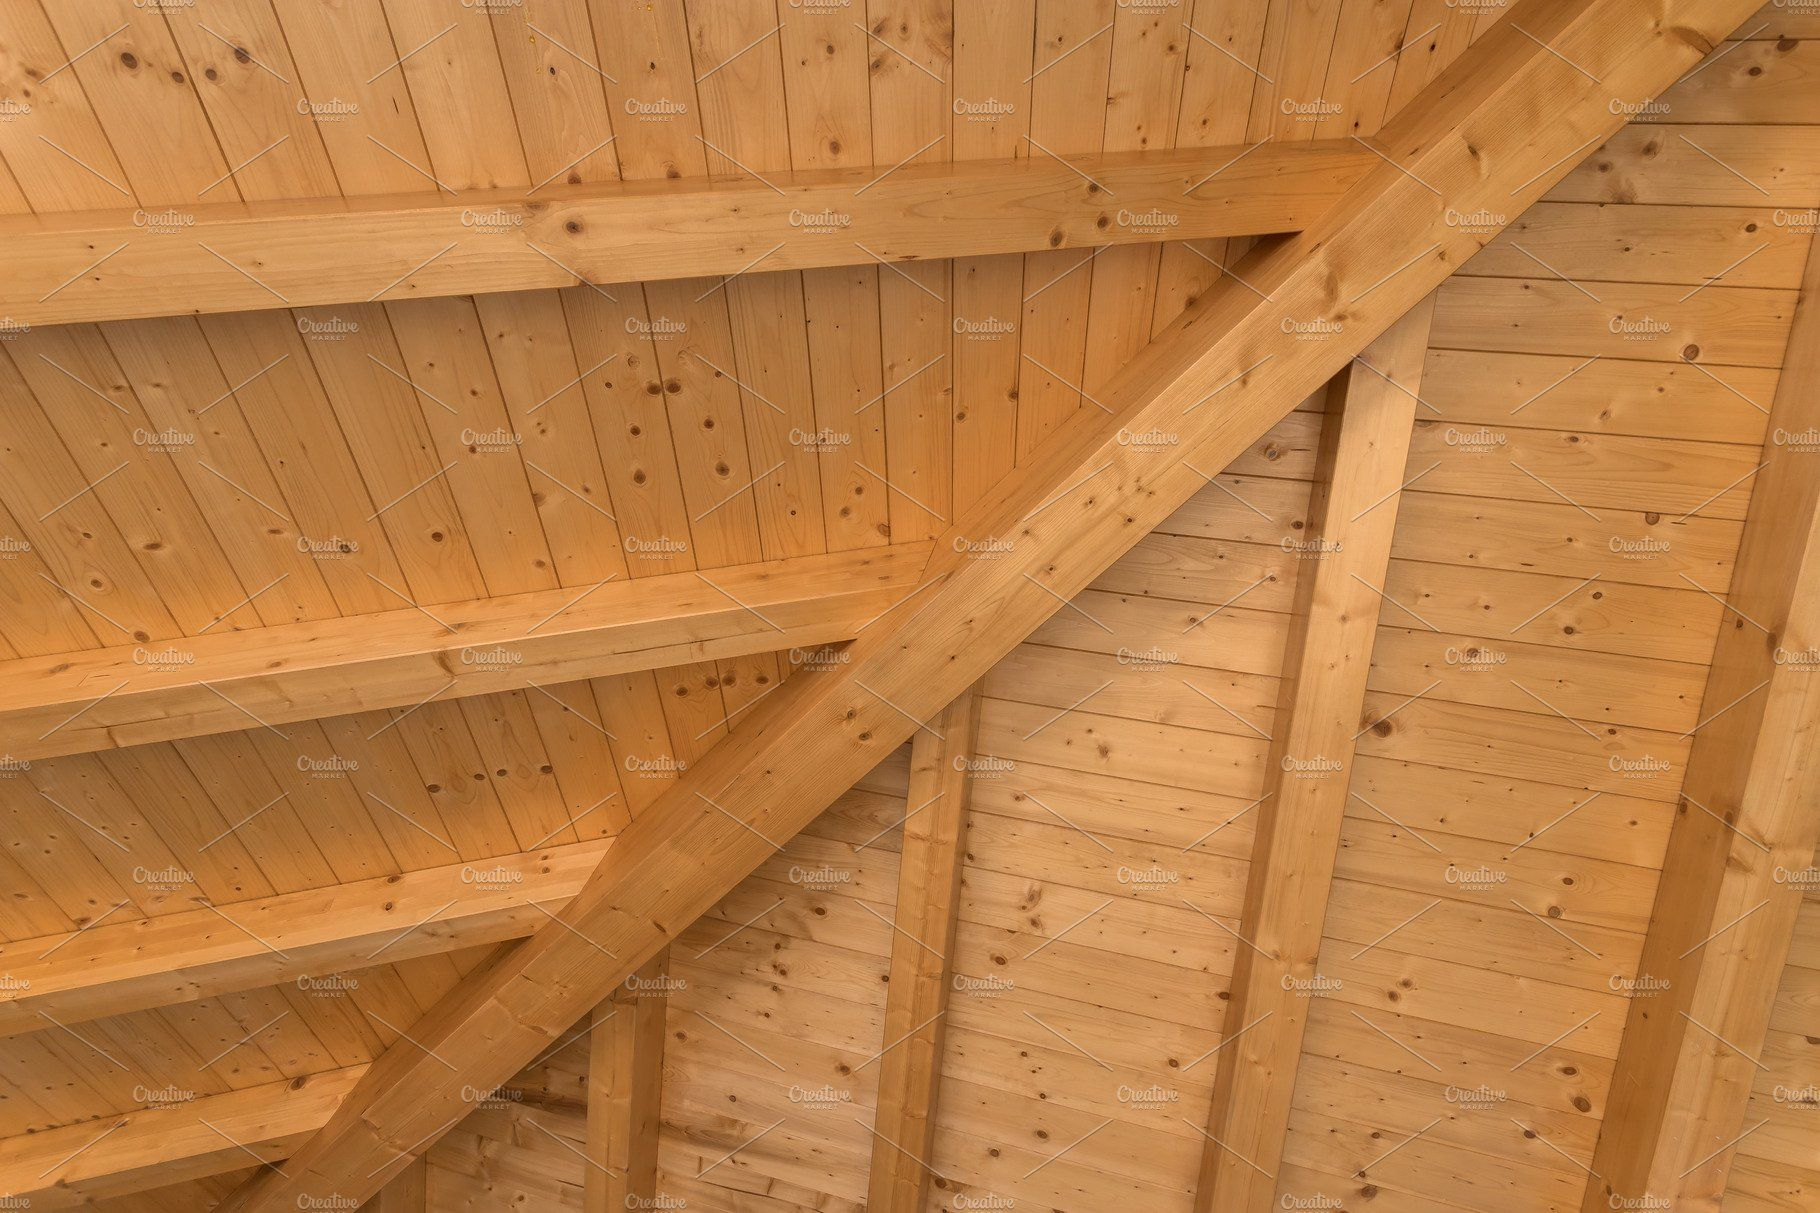 Interior Wooden Roof By Kyna Studio On Creativemarket